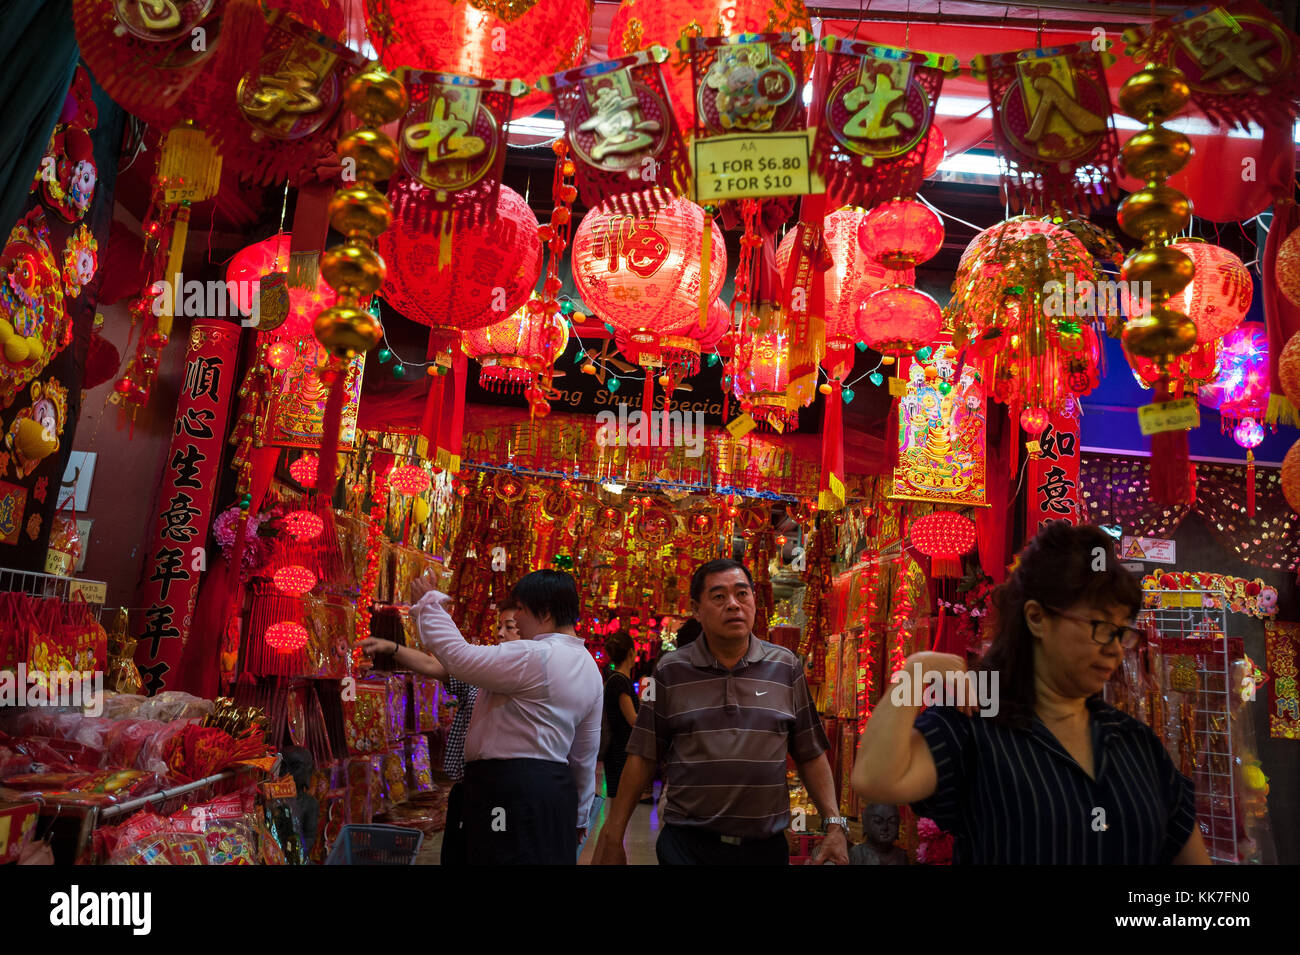 Chinese Gift Shop In Chinatown Stock Photos Amp Chinese Gift Shop In Chinatown Stock Images Alamy